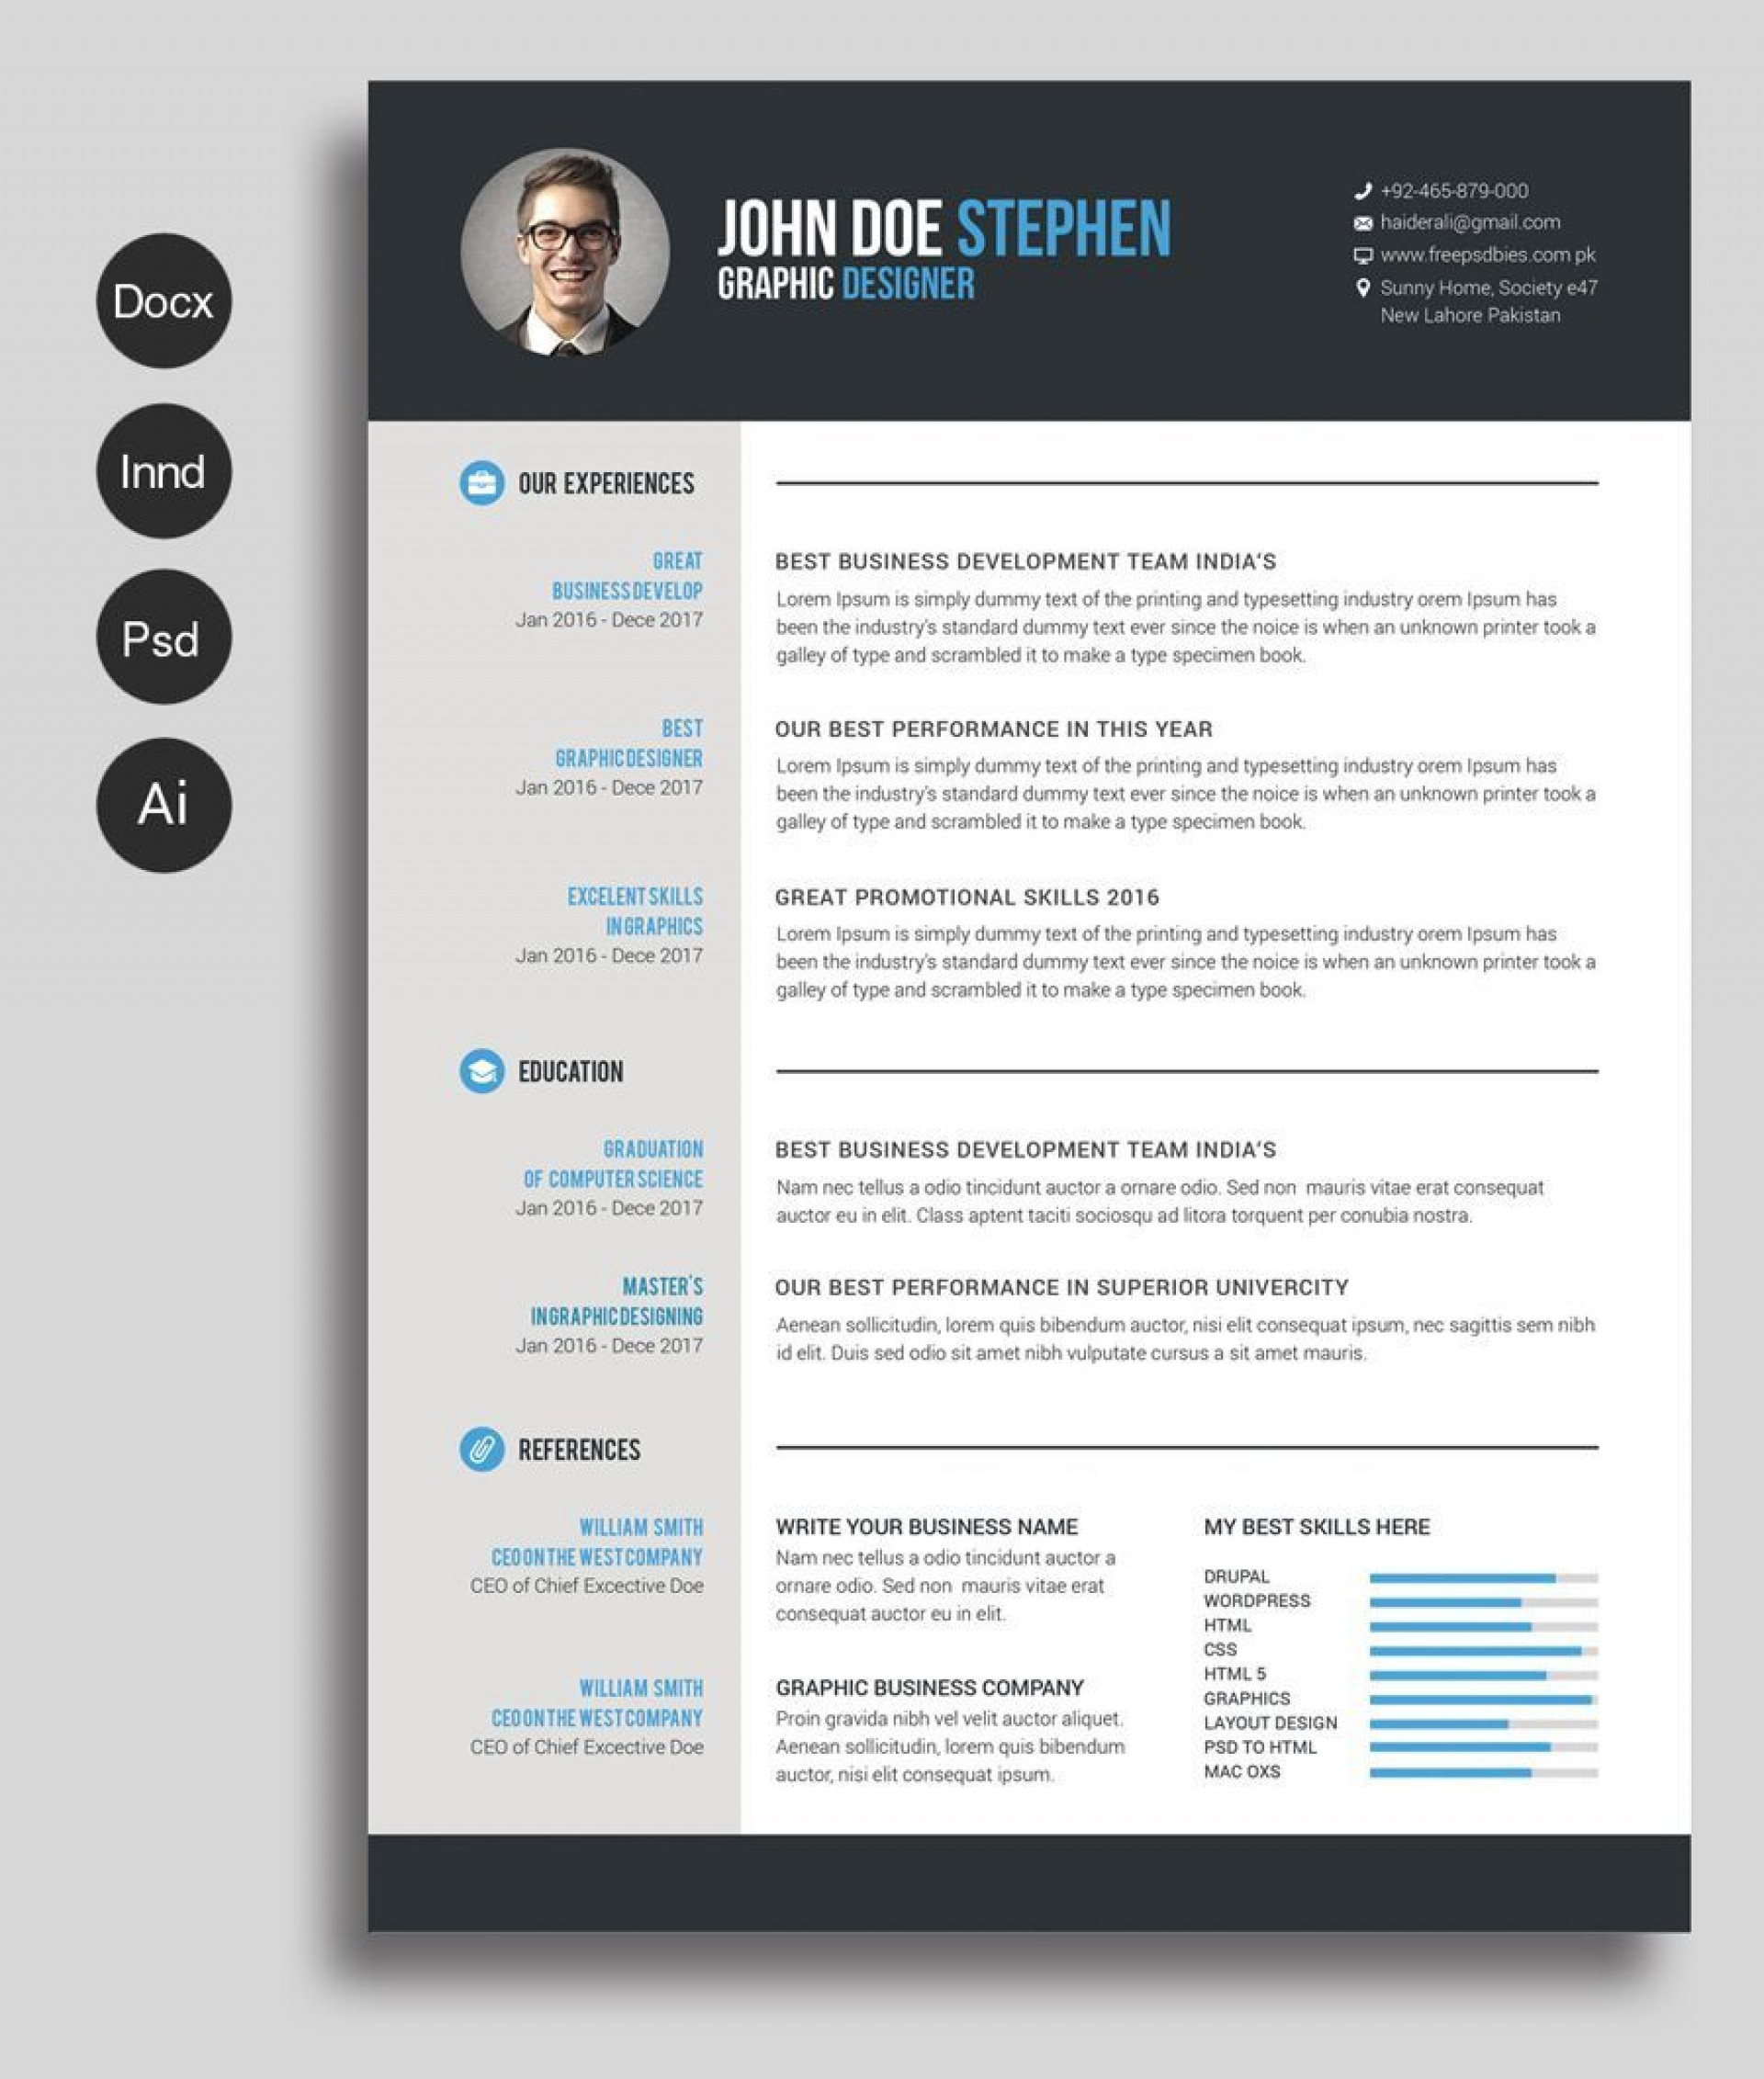 001 Remarkable Microsoft Word Free Template Sample  Templates For Report Invoice Uk Download1920